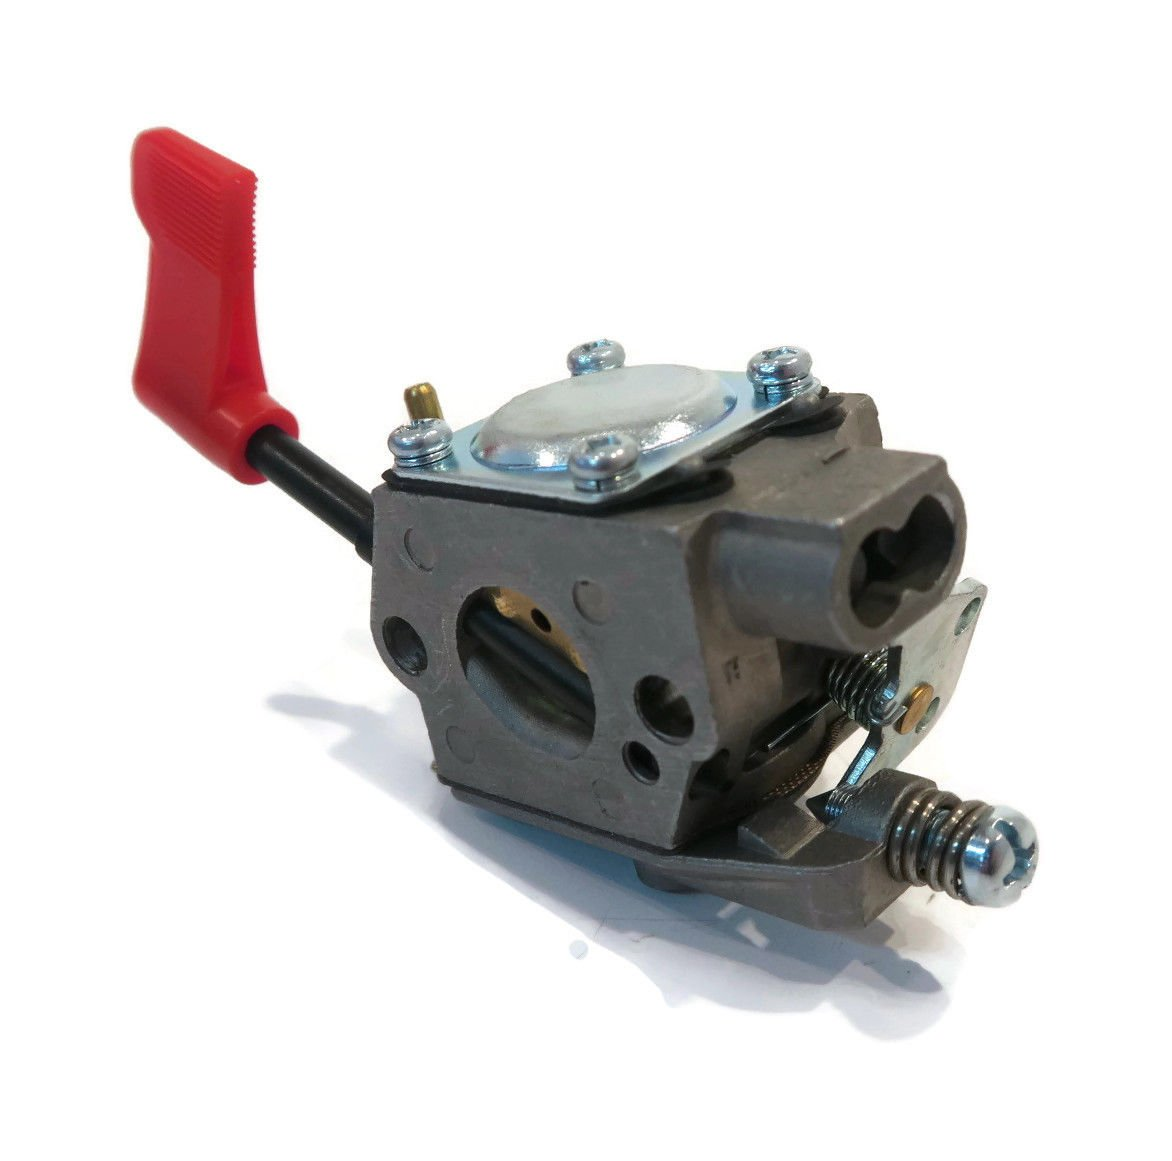 The ROP Shop Carburetor Carb for Walbro WT-628 fits Poulan PP445, PP446, PP446T Pole Pruners by The ROP Shop